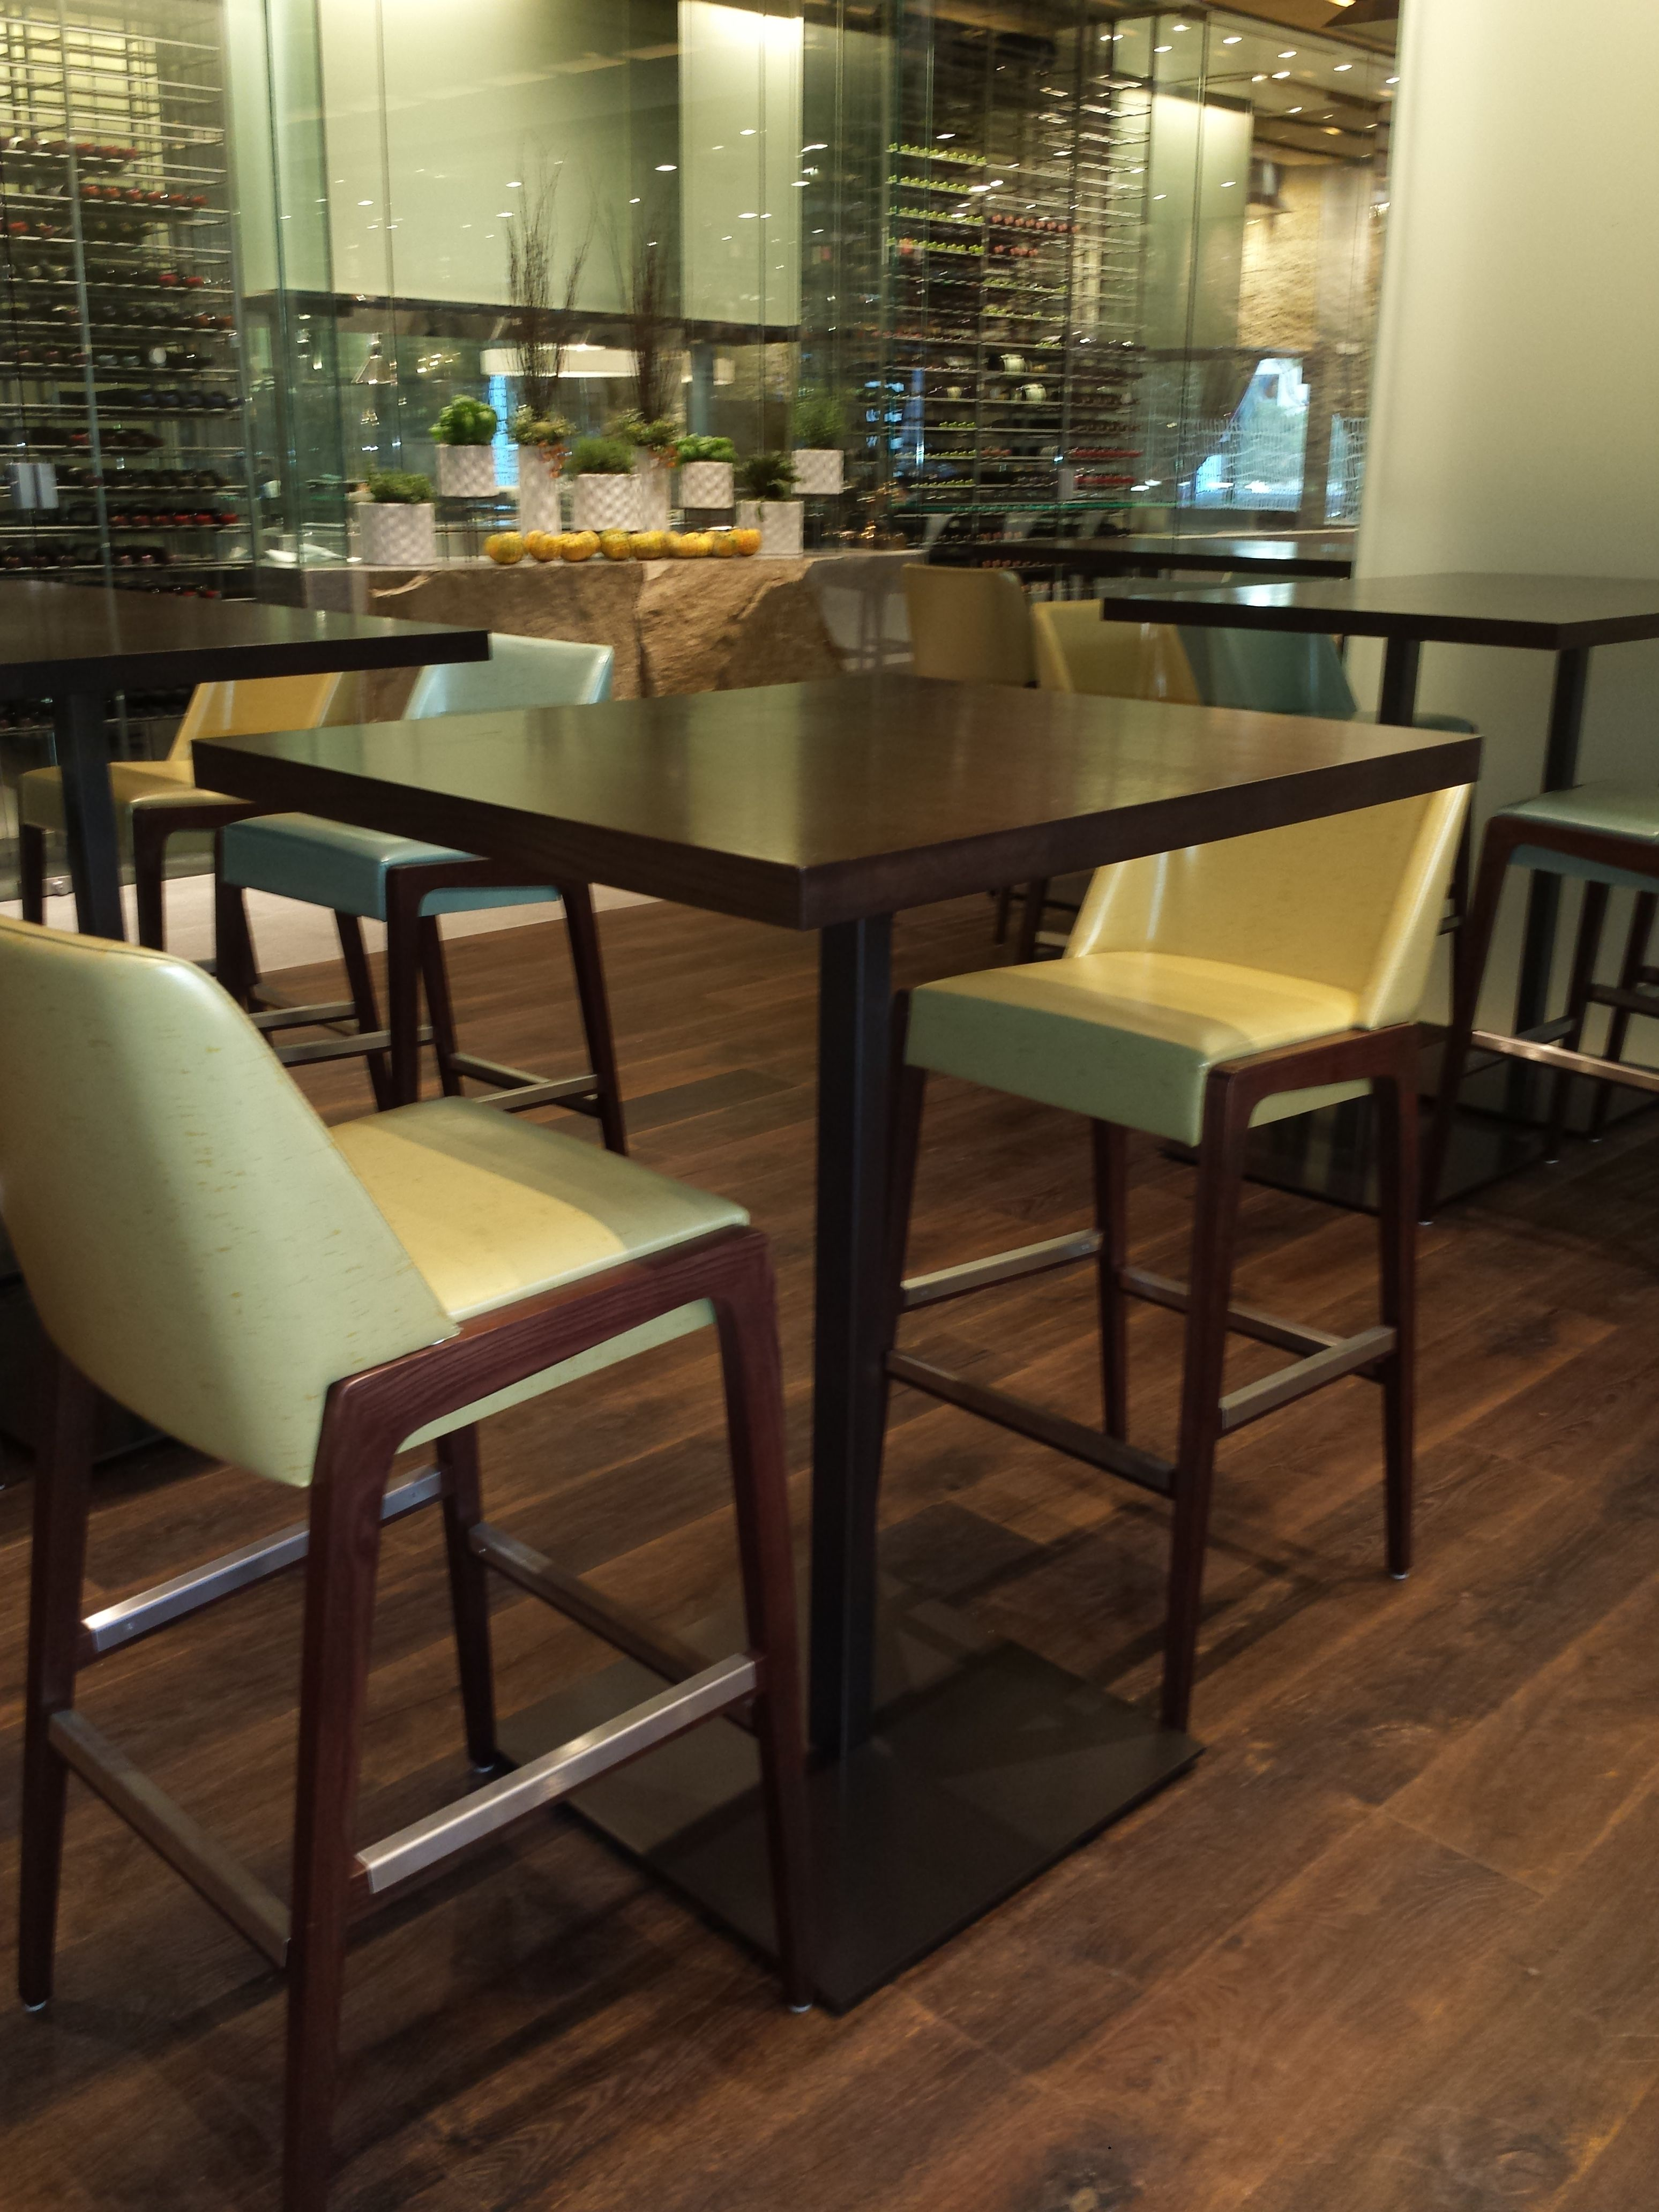 Aceray  Bar Stools And Chairsour Gala Bar Stool At The New New Restaurant Dining Room Furniture Design Decoration